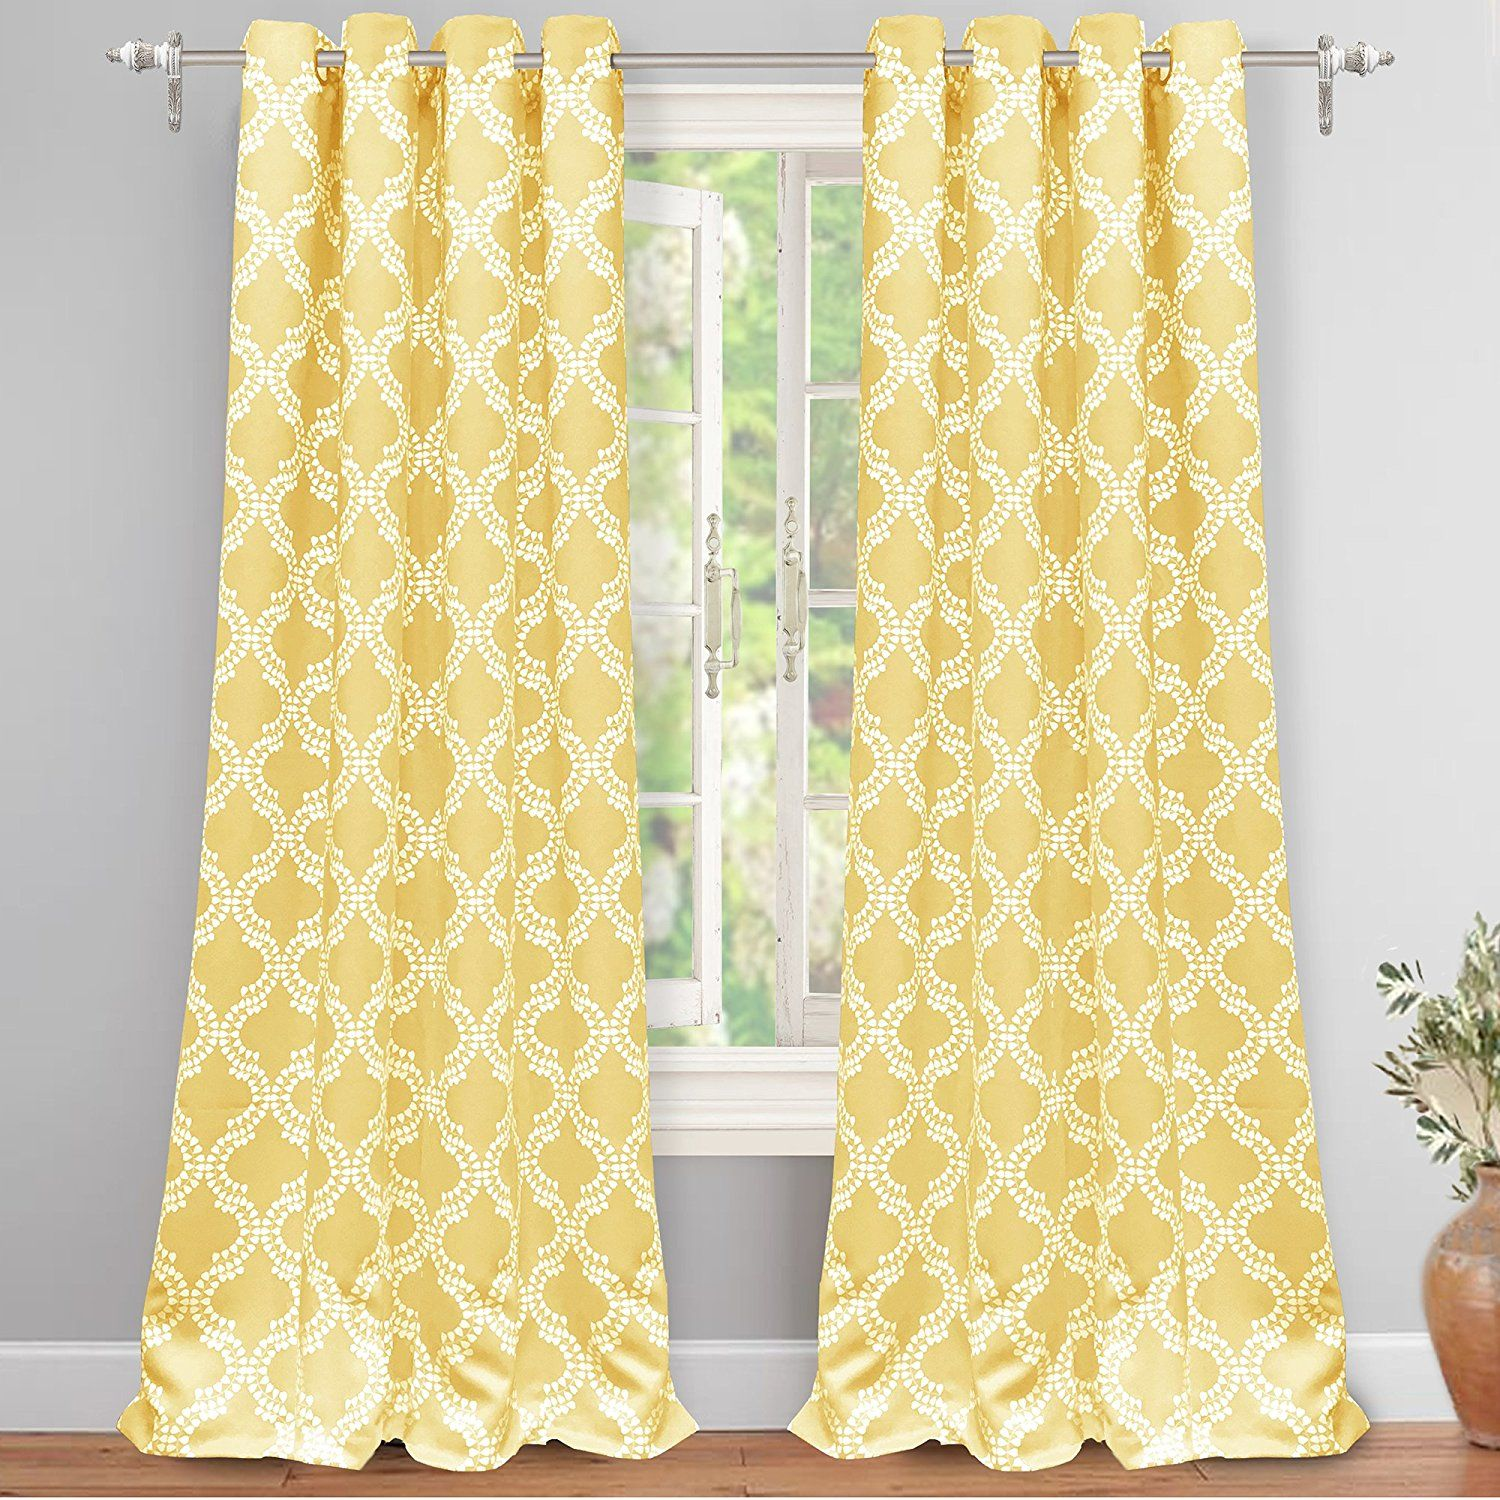 Amazon Com Driftaway Julianna Geometric Pattern Thermal Insulated Blackout Room Darkening Grommet Unlined Window Curtain Panel Curtains Cool Curtains Curtains